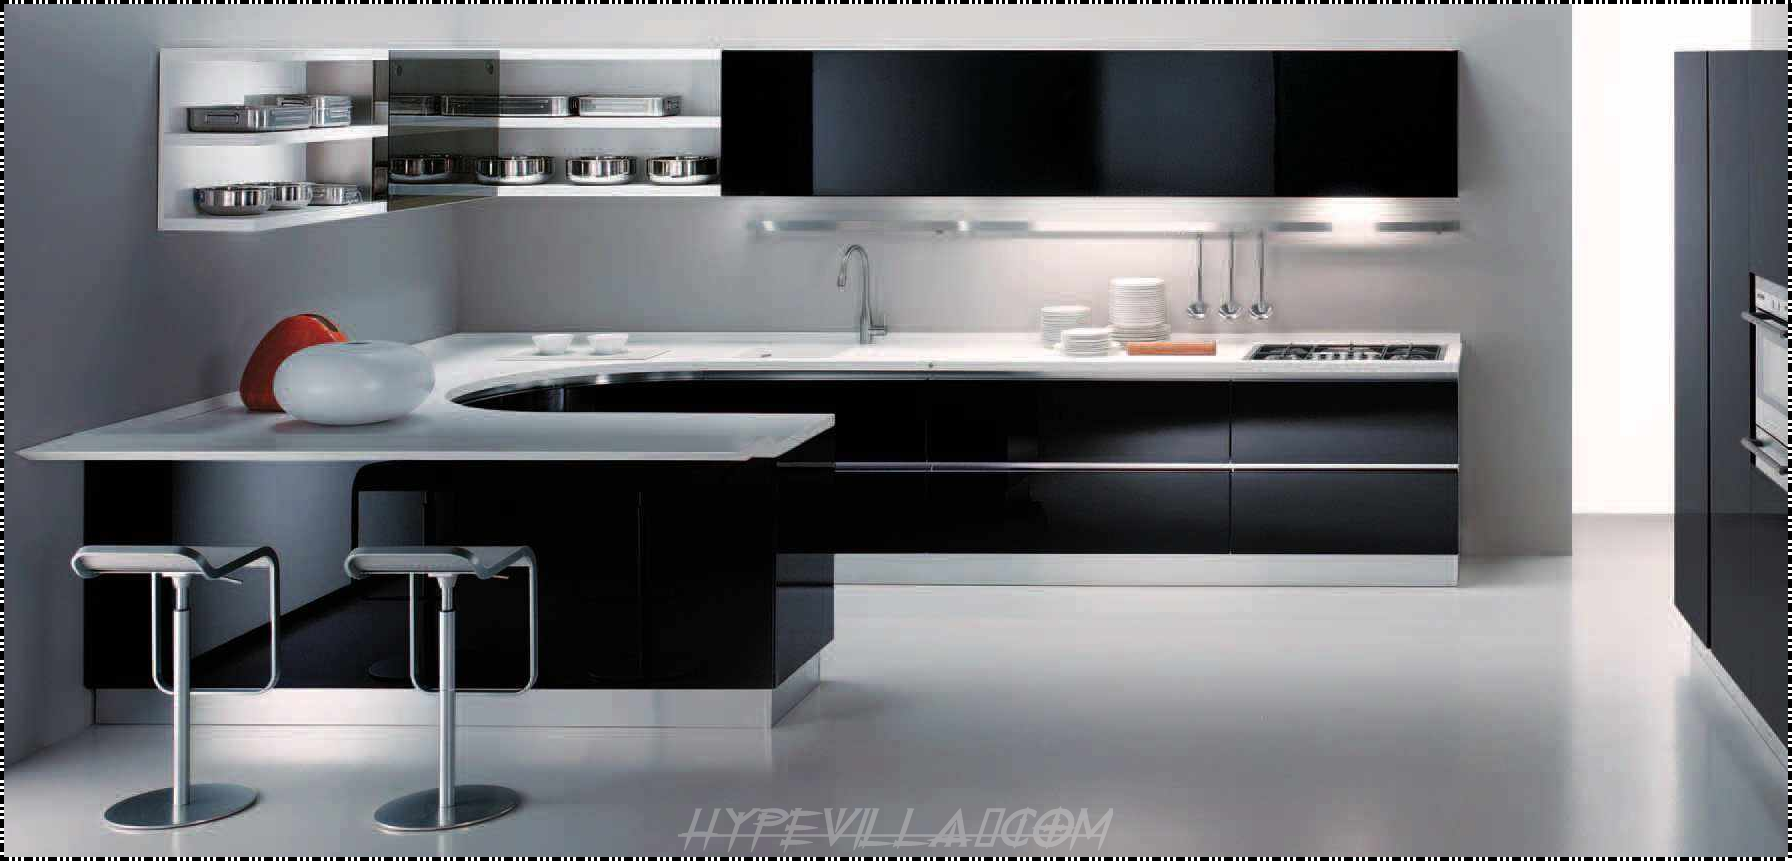 Inside a mansion modern kitchen new modern home designs for Contemporary kitchen decorative accessories